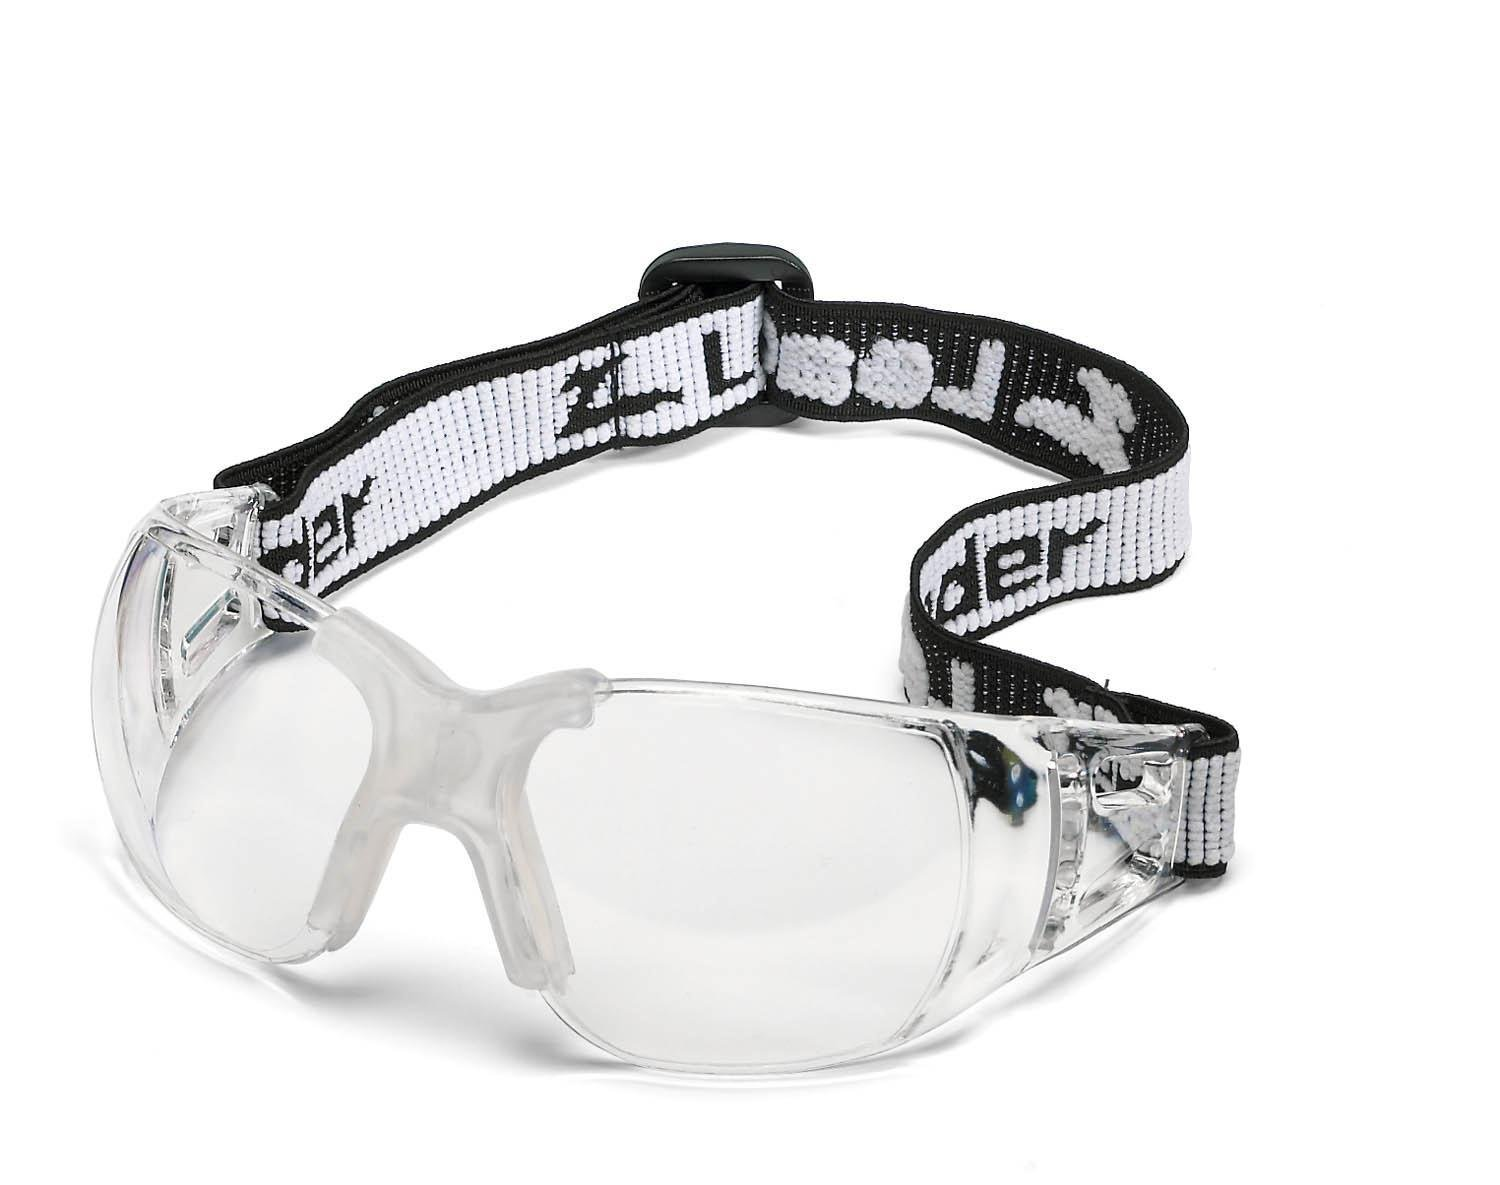 70d5a4190d2 Hilco Leader Champ Junior Sports Goggles ...